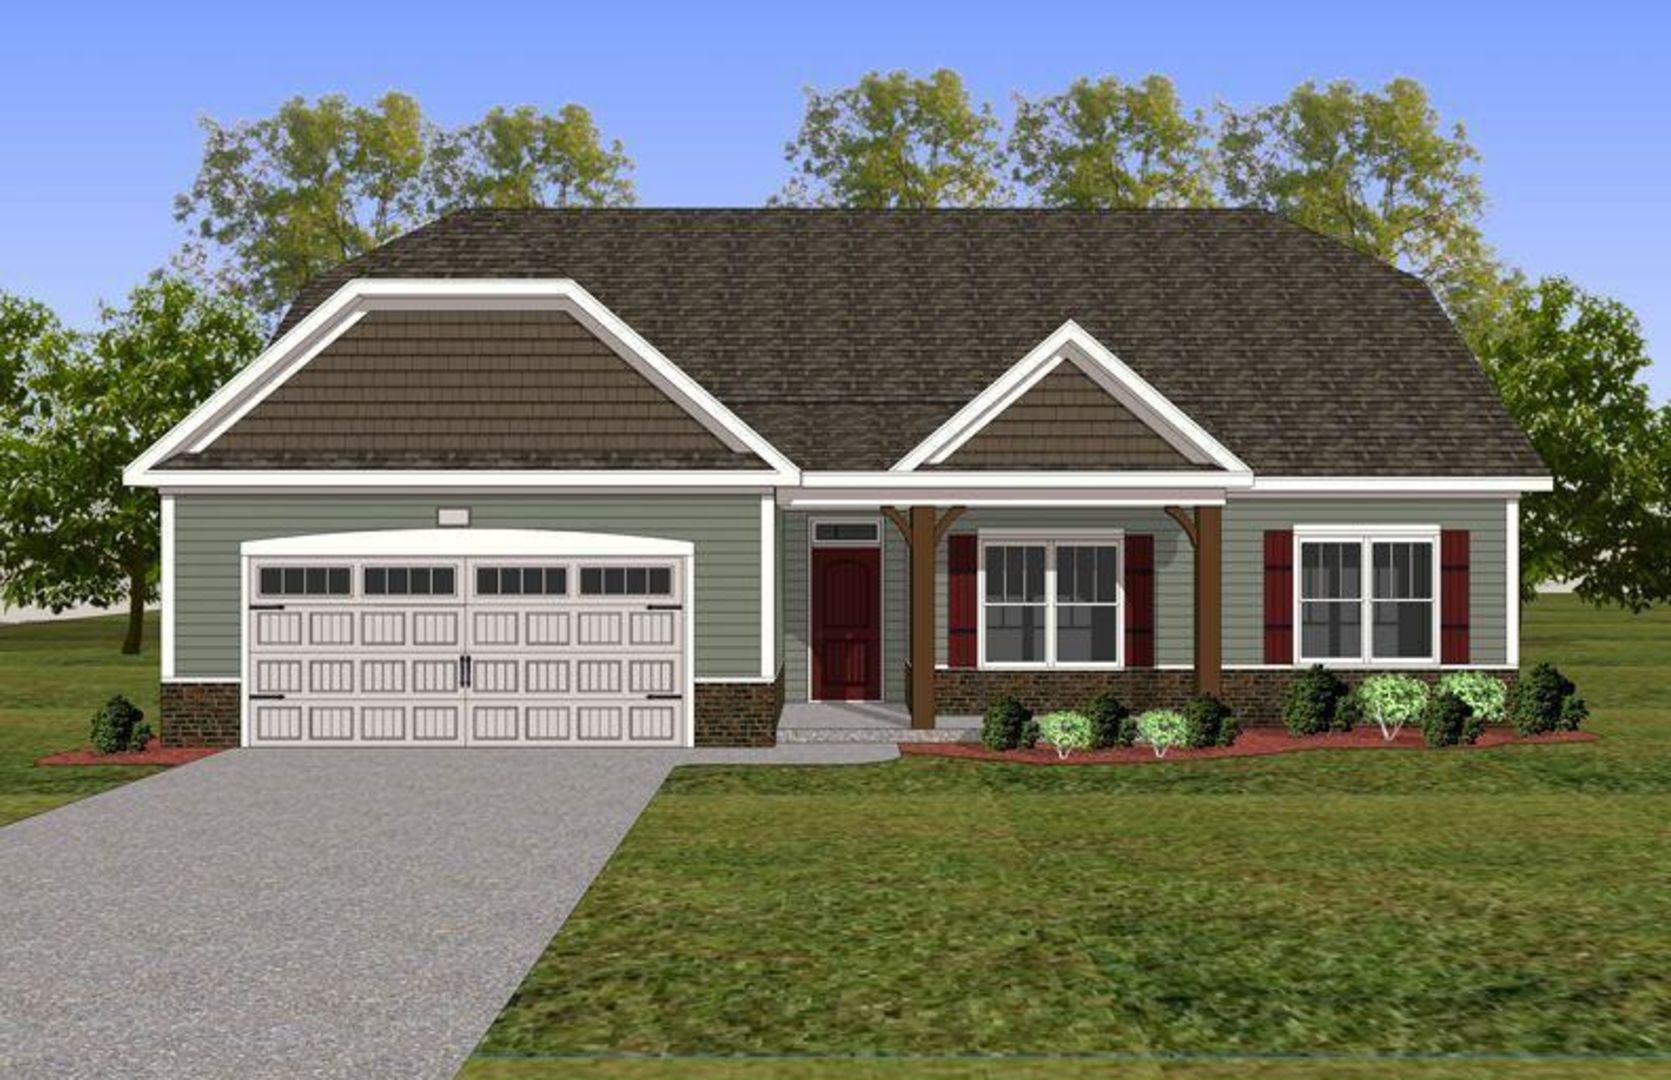 2037 Lindrick Court NW, Calabash, NC Homes & Land - Real Estate